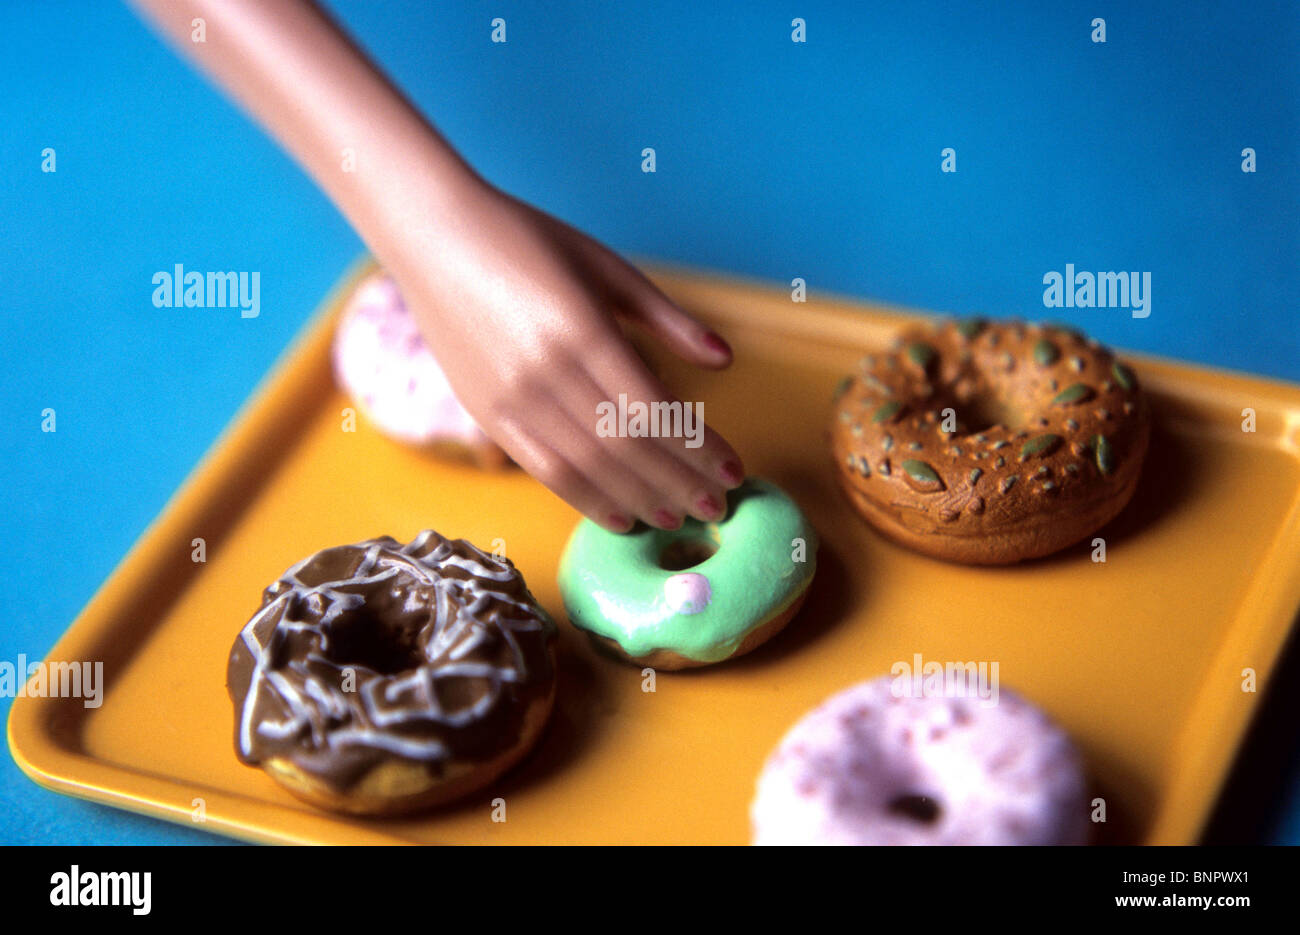 A woman's hand reaching for  a donut. - Stock Image